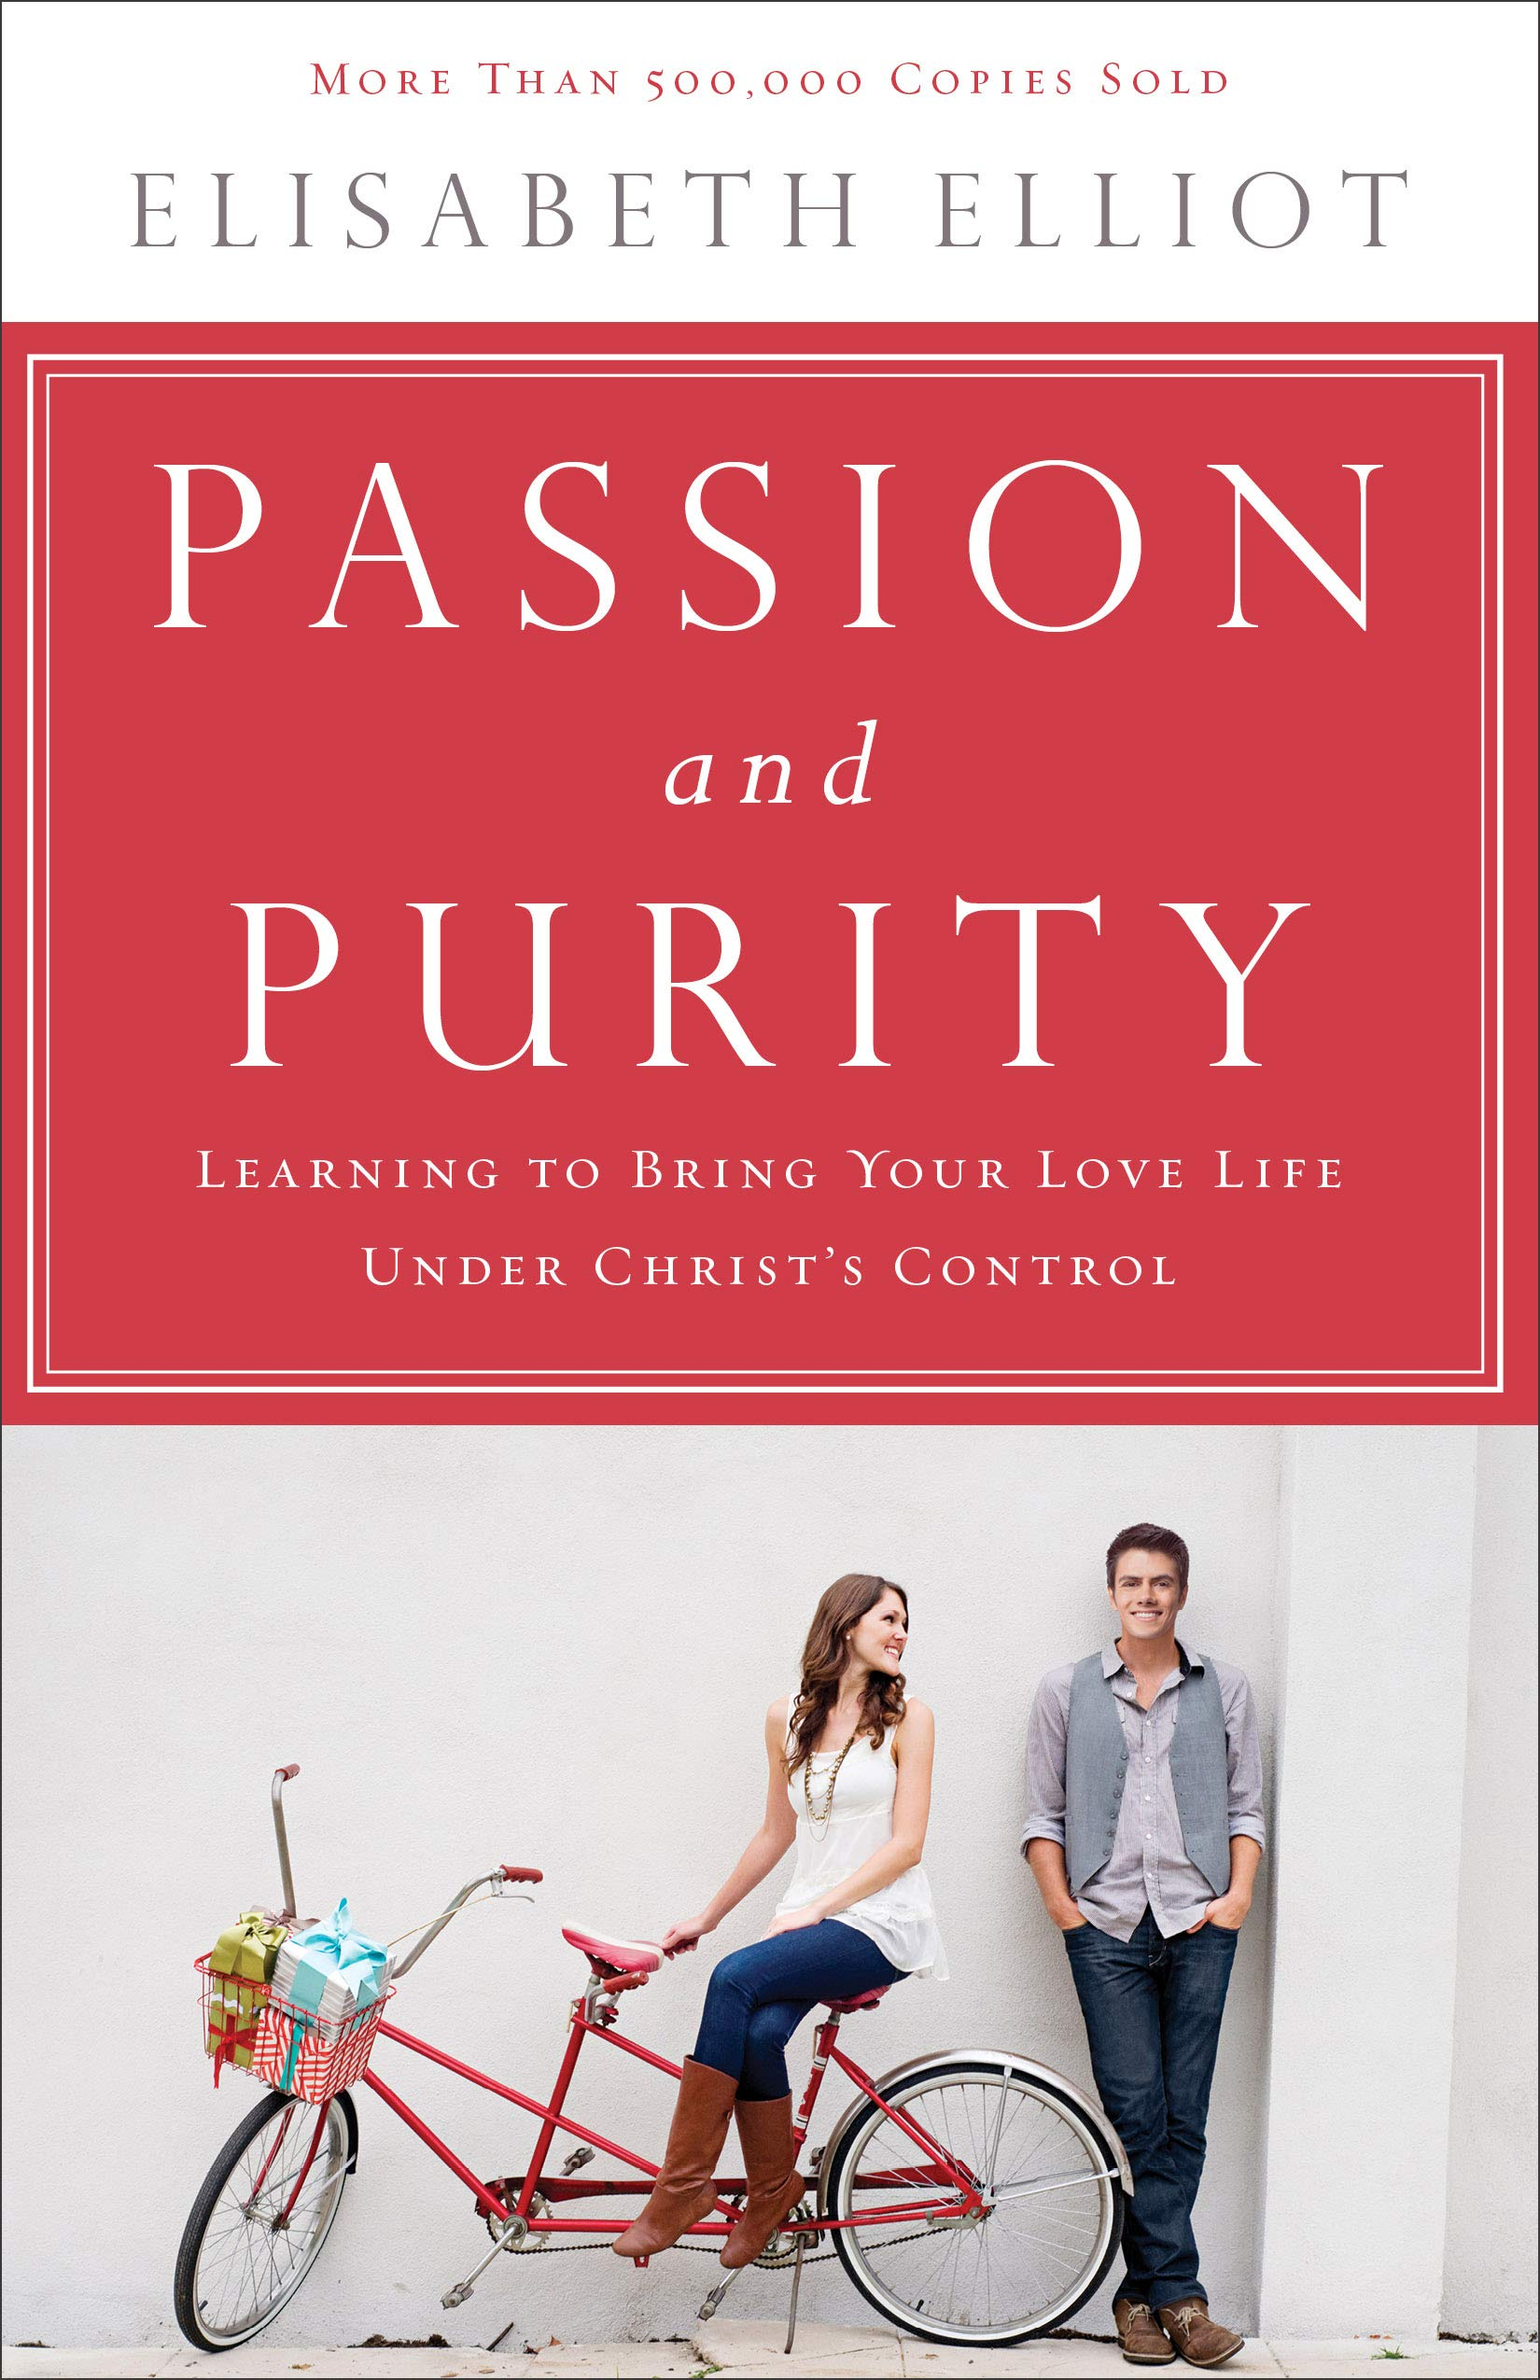 Image OfPassion And Purity: Learning To Bring Your Love Life Under Christ's Control